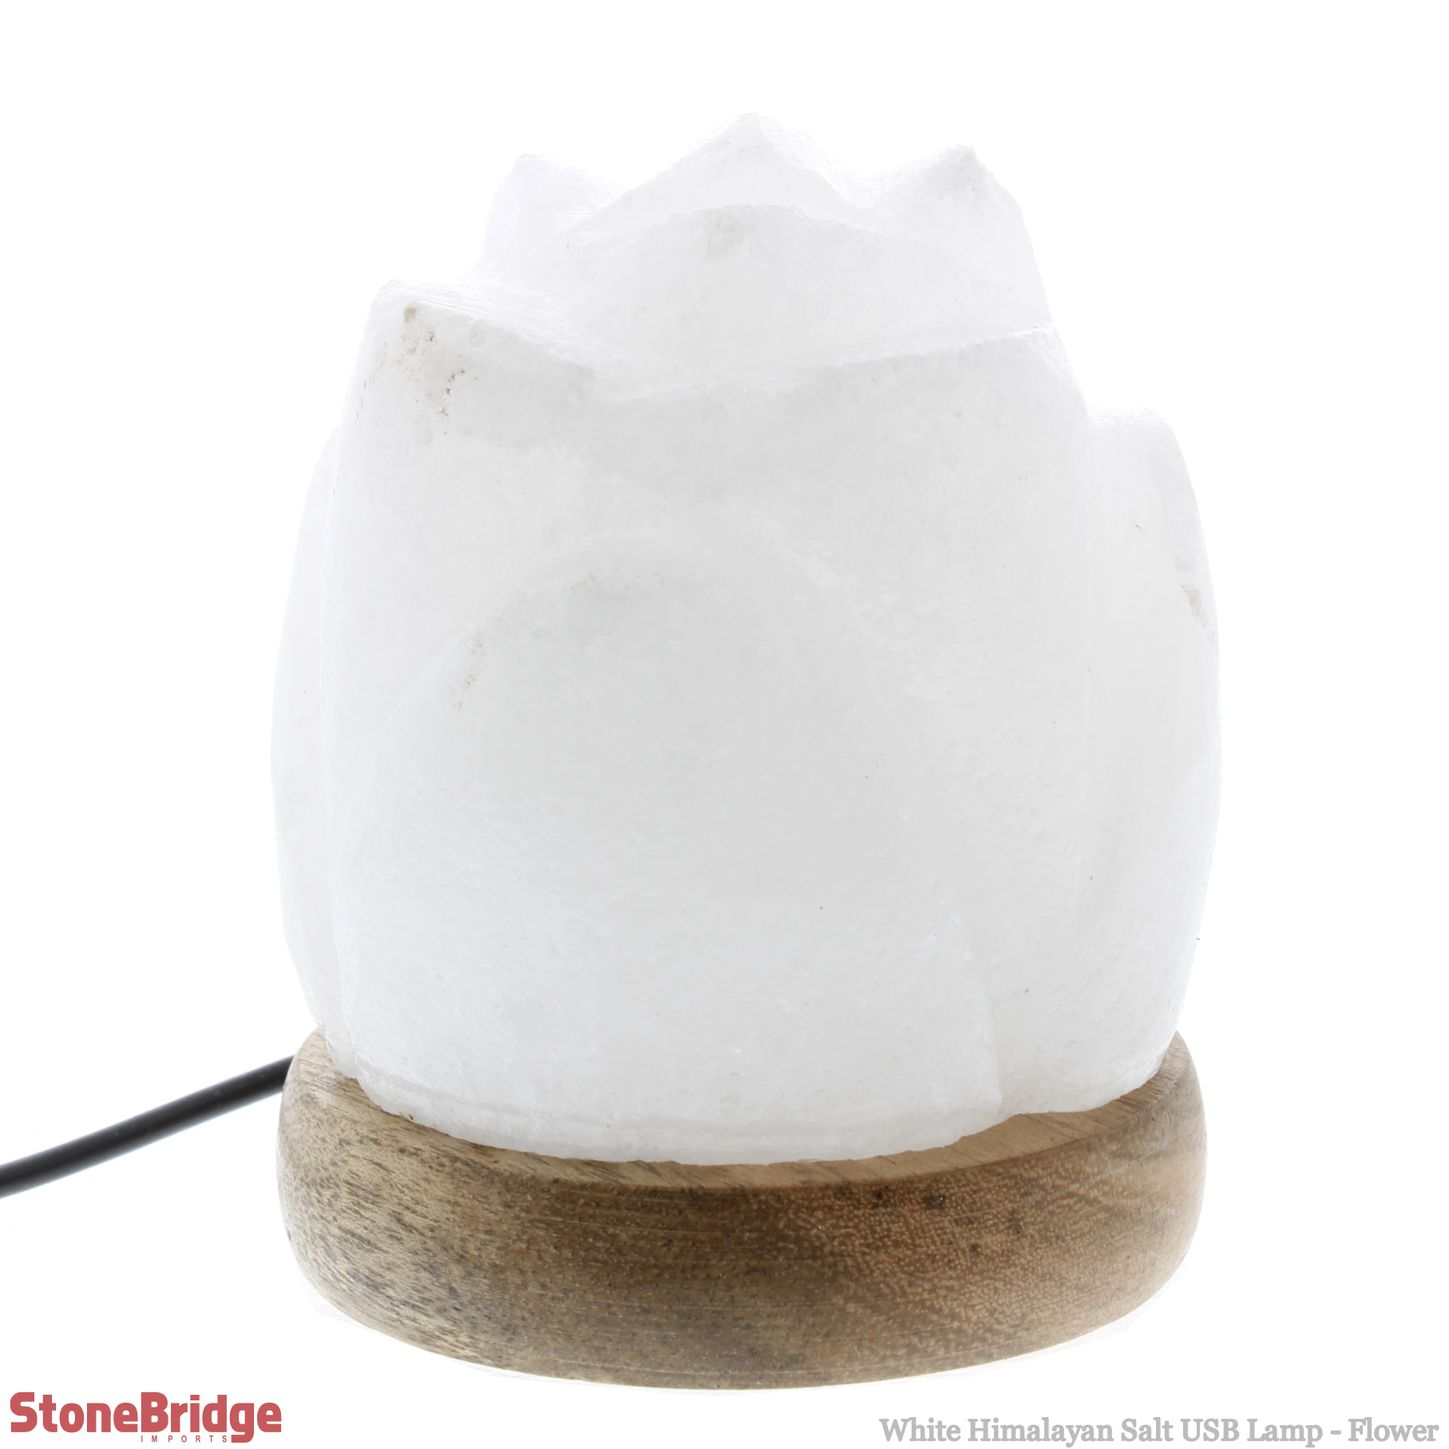 LASAUSRWfl_White Himalayan Salt USB Lamp Flower_8.jpg